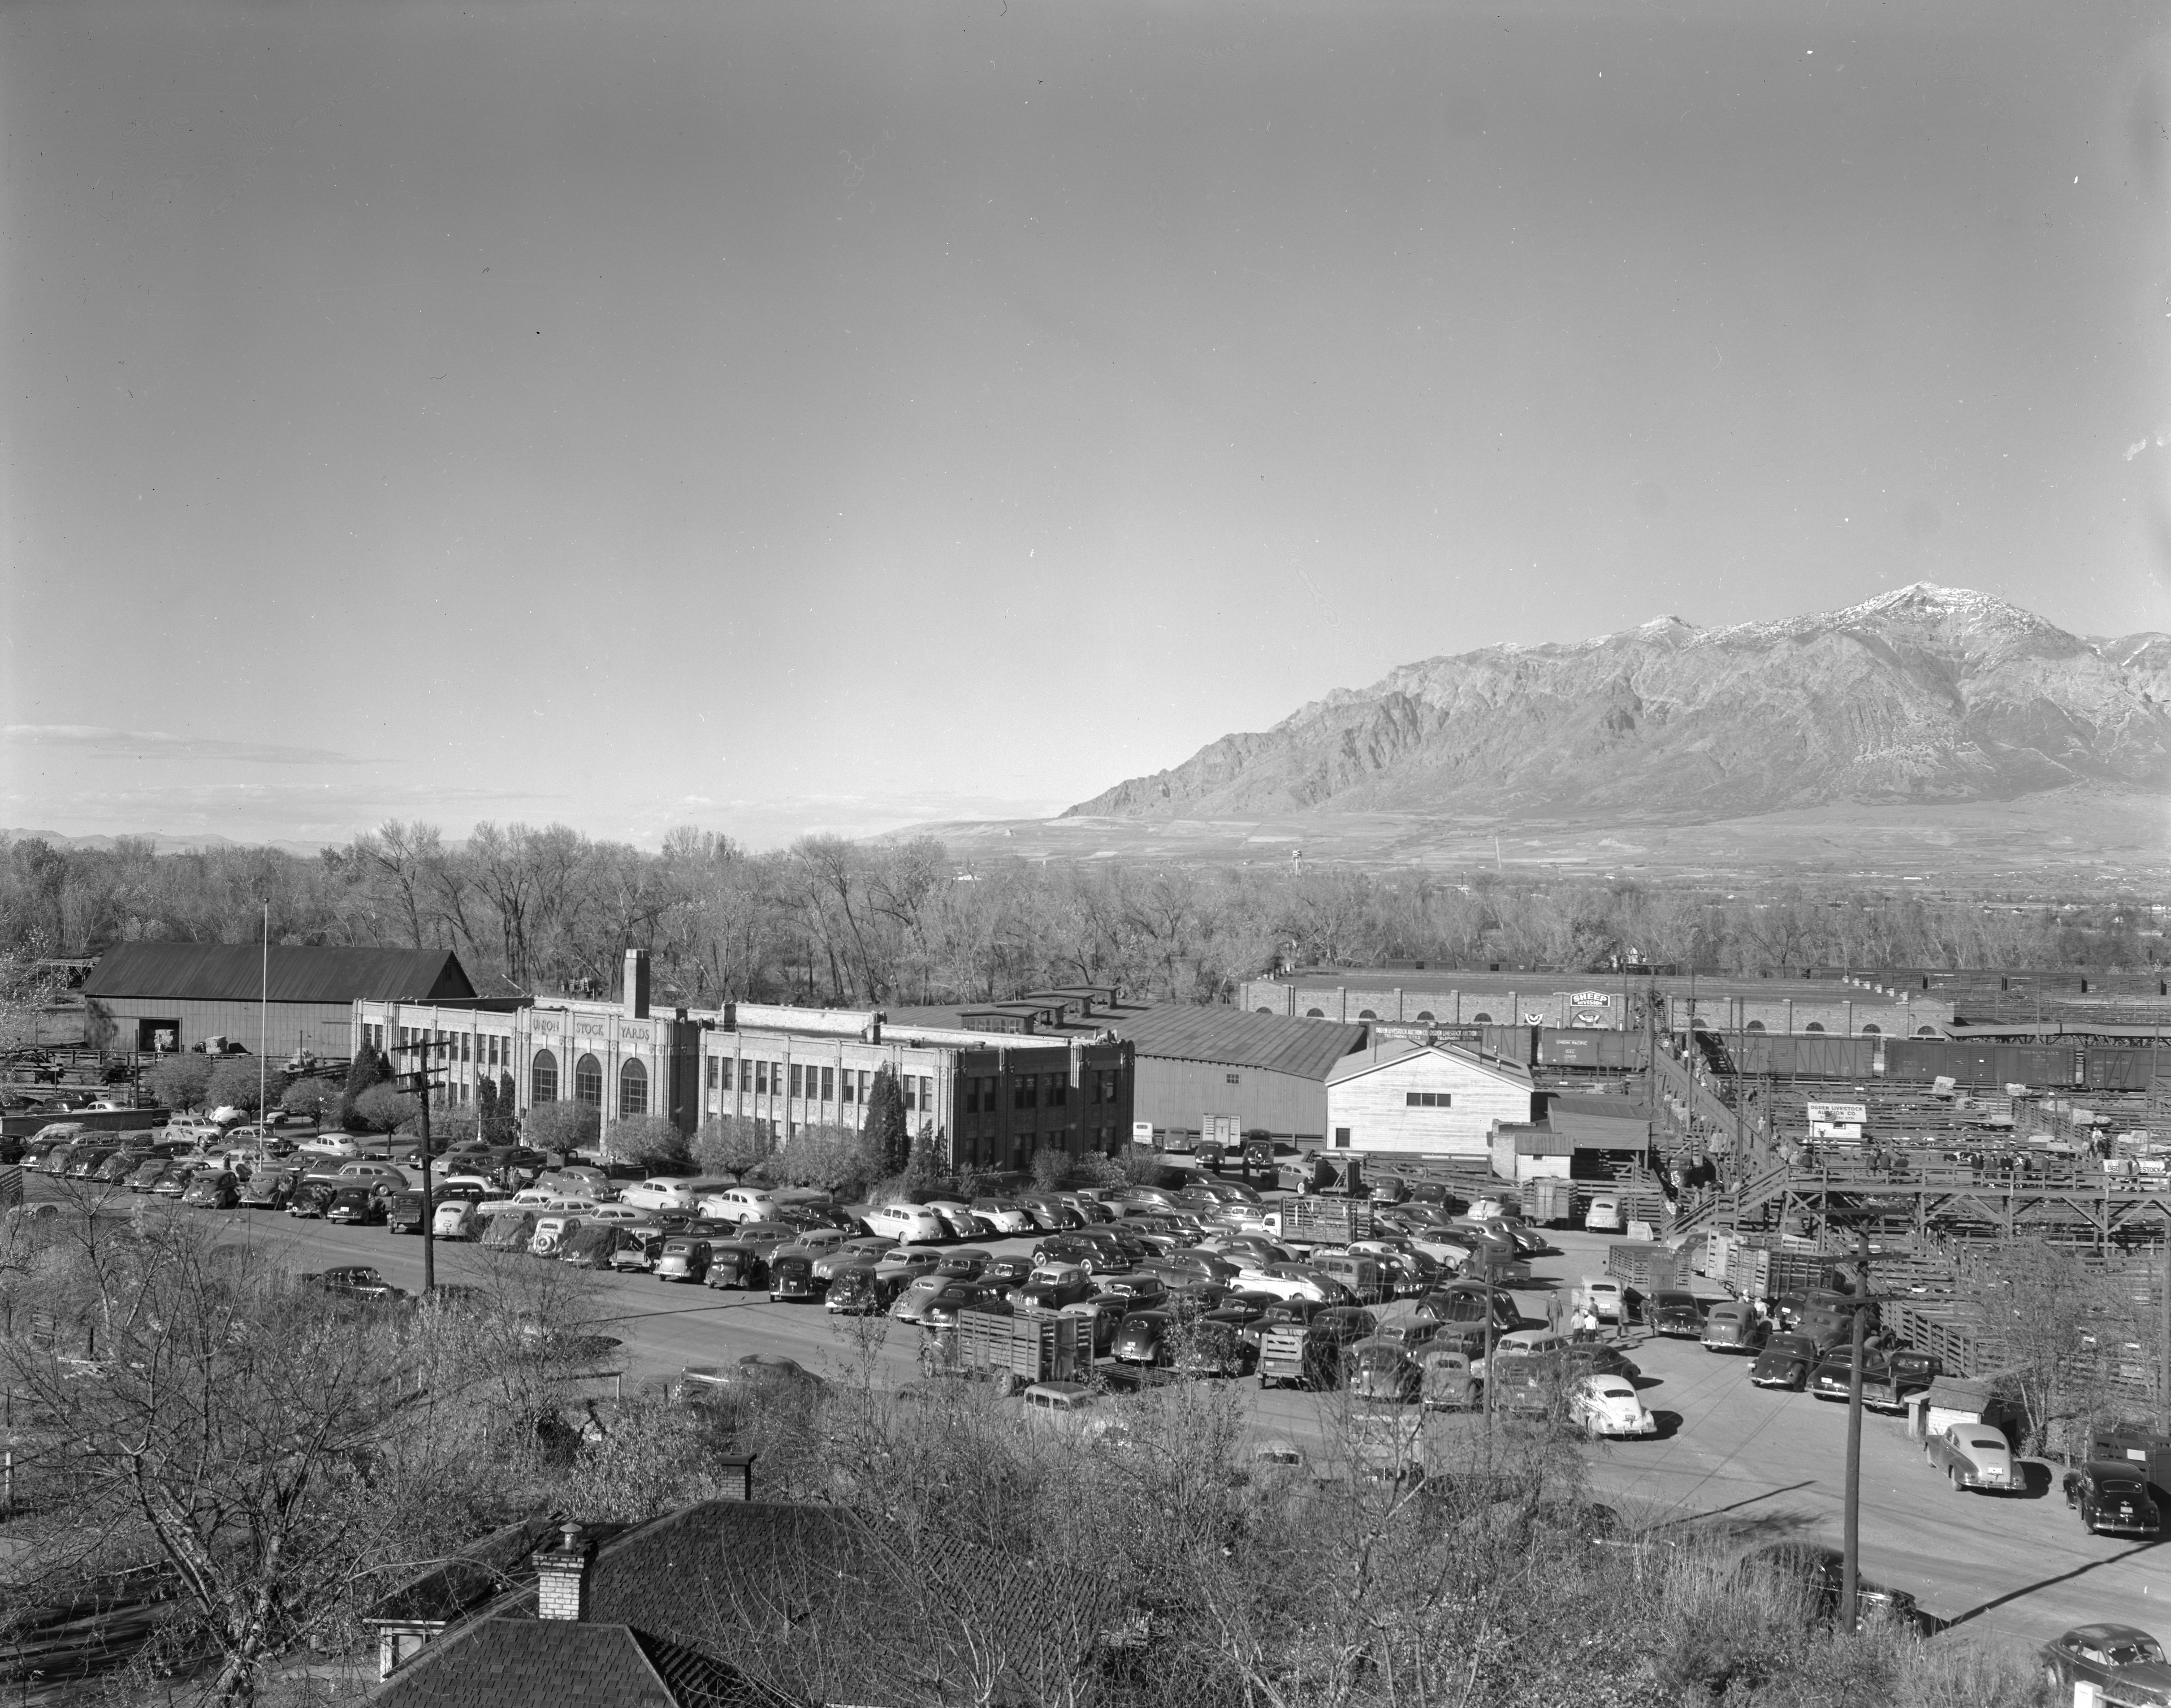 View of the Ogden Union Stockyards Exchange building from the viaduct. 1944 image showing parking lot crowded with cars. It must be auction day. Thank you to Don Strack for generously sharing this photo, part of his extensive gallery.